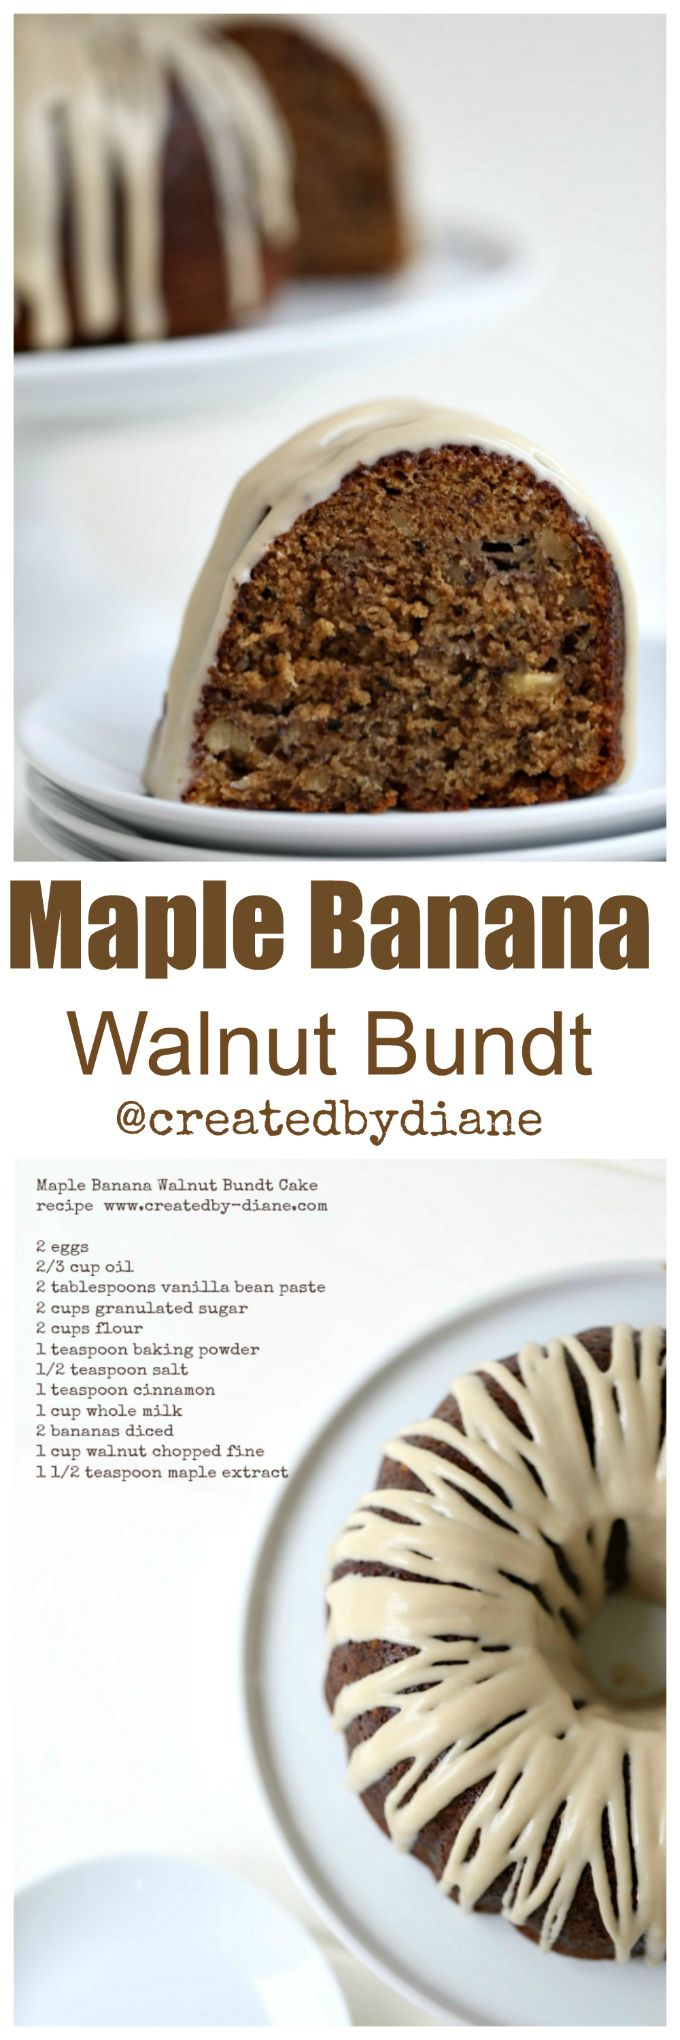 this is not your ordinary banana cake, this cake is full of maple flavor that will know your socks off it's so yummy.